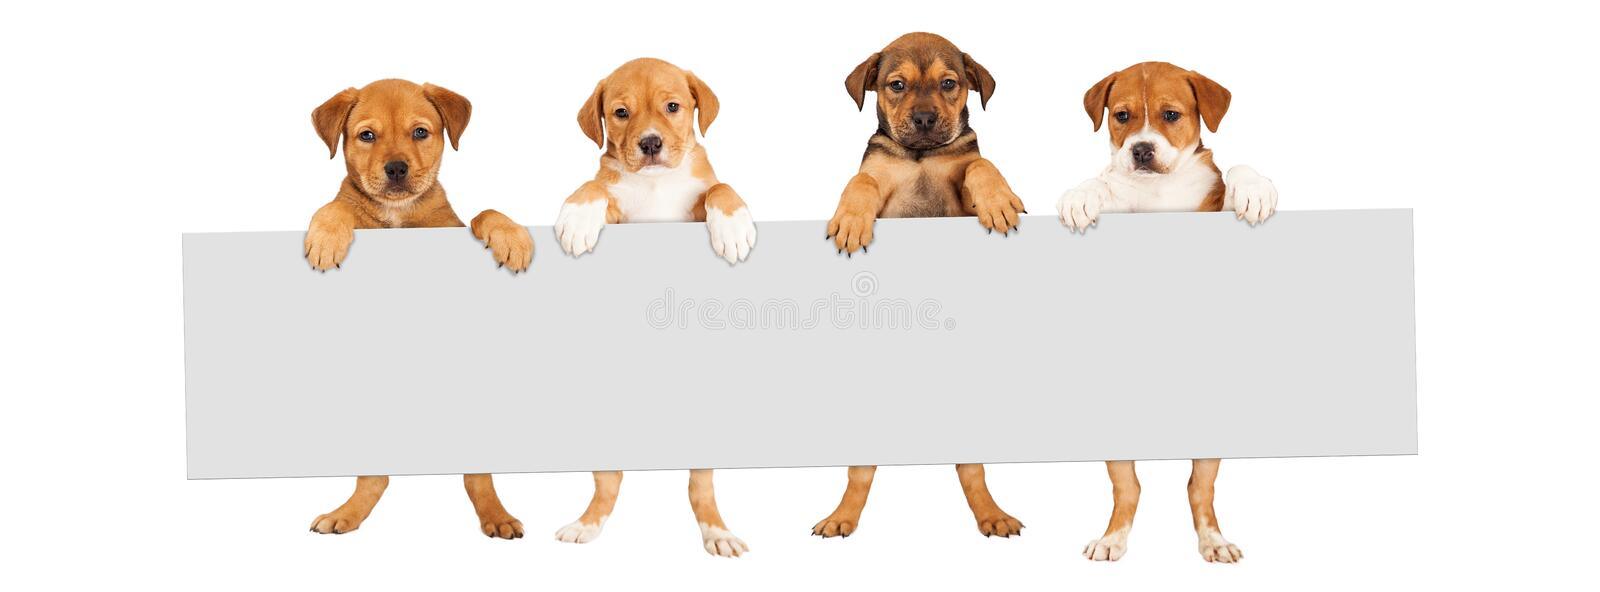 Puppies Hanging Over Banner. Four mixed Shepherd breed puppy dogs holding a blank sign to enter text onto royalty free stock photos